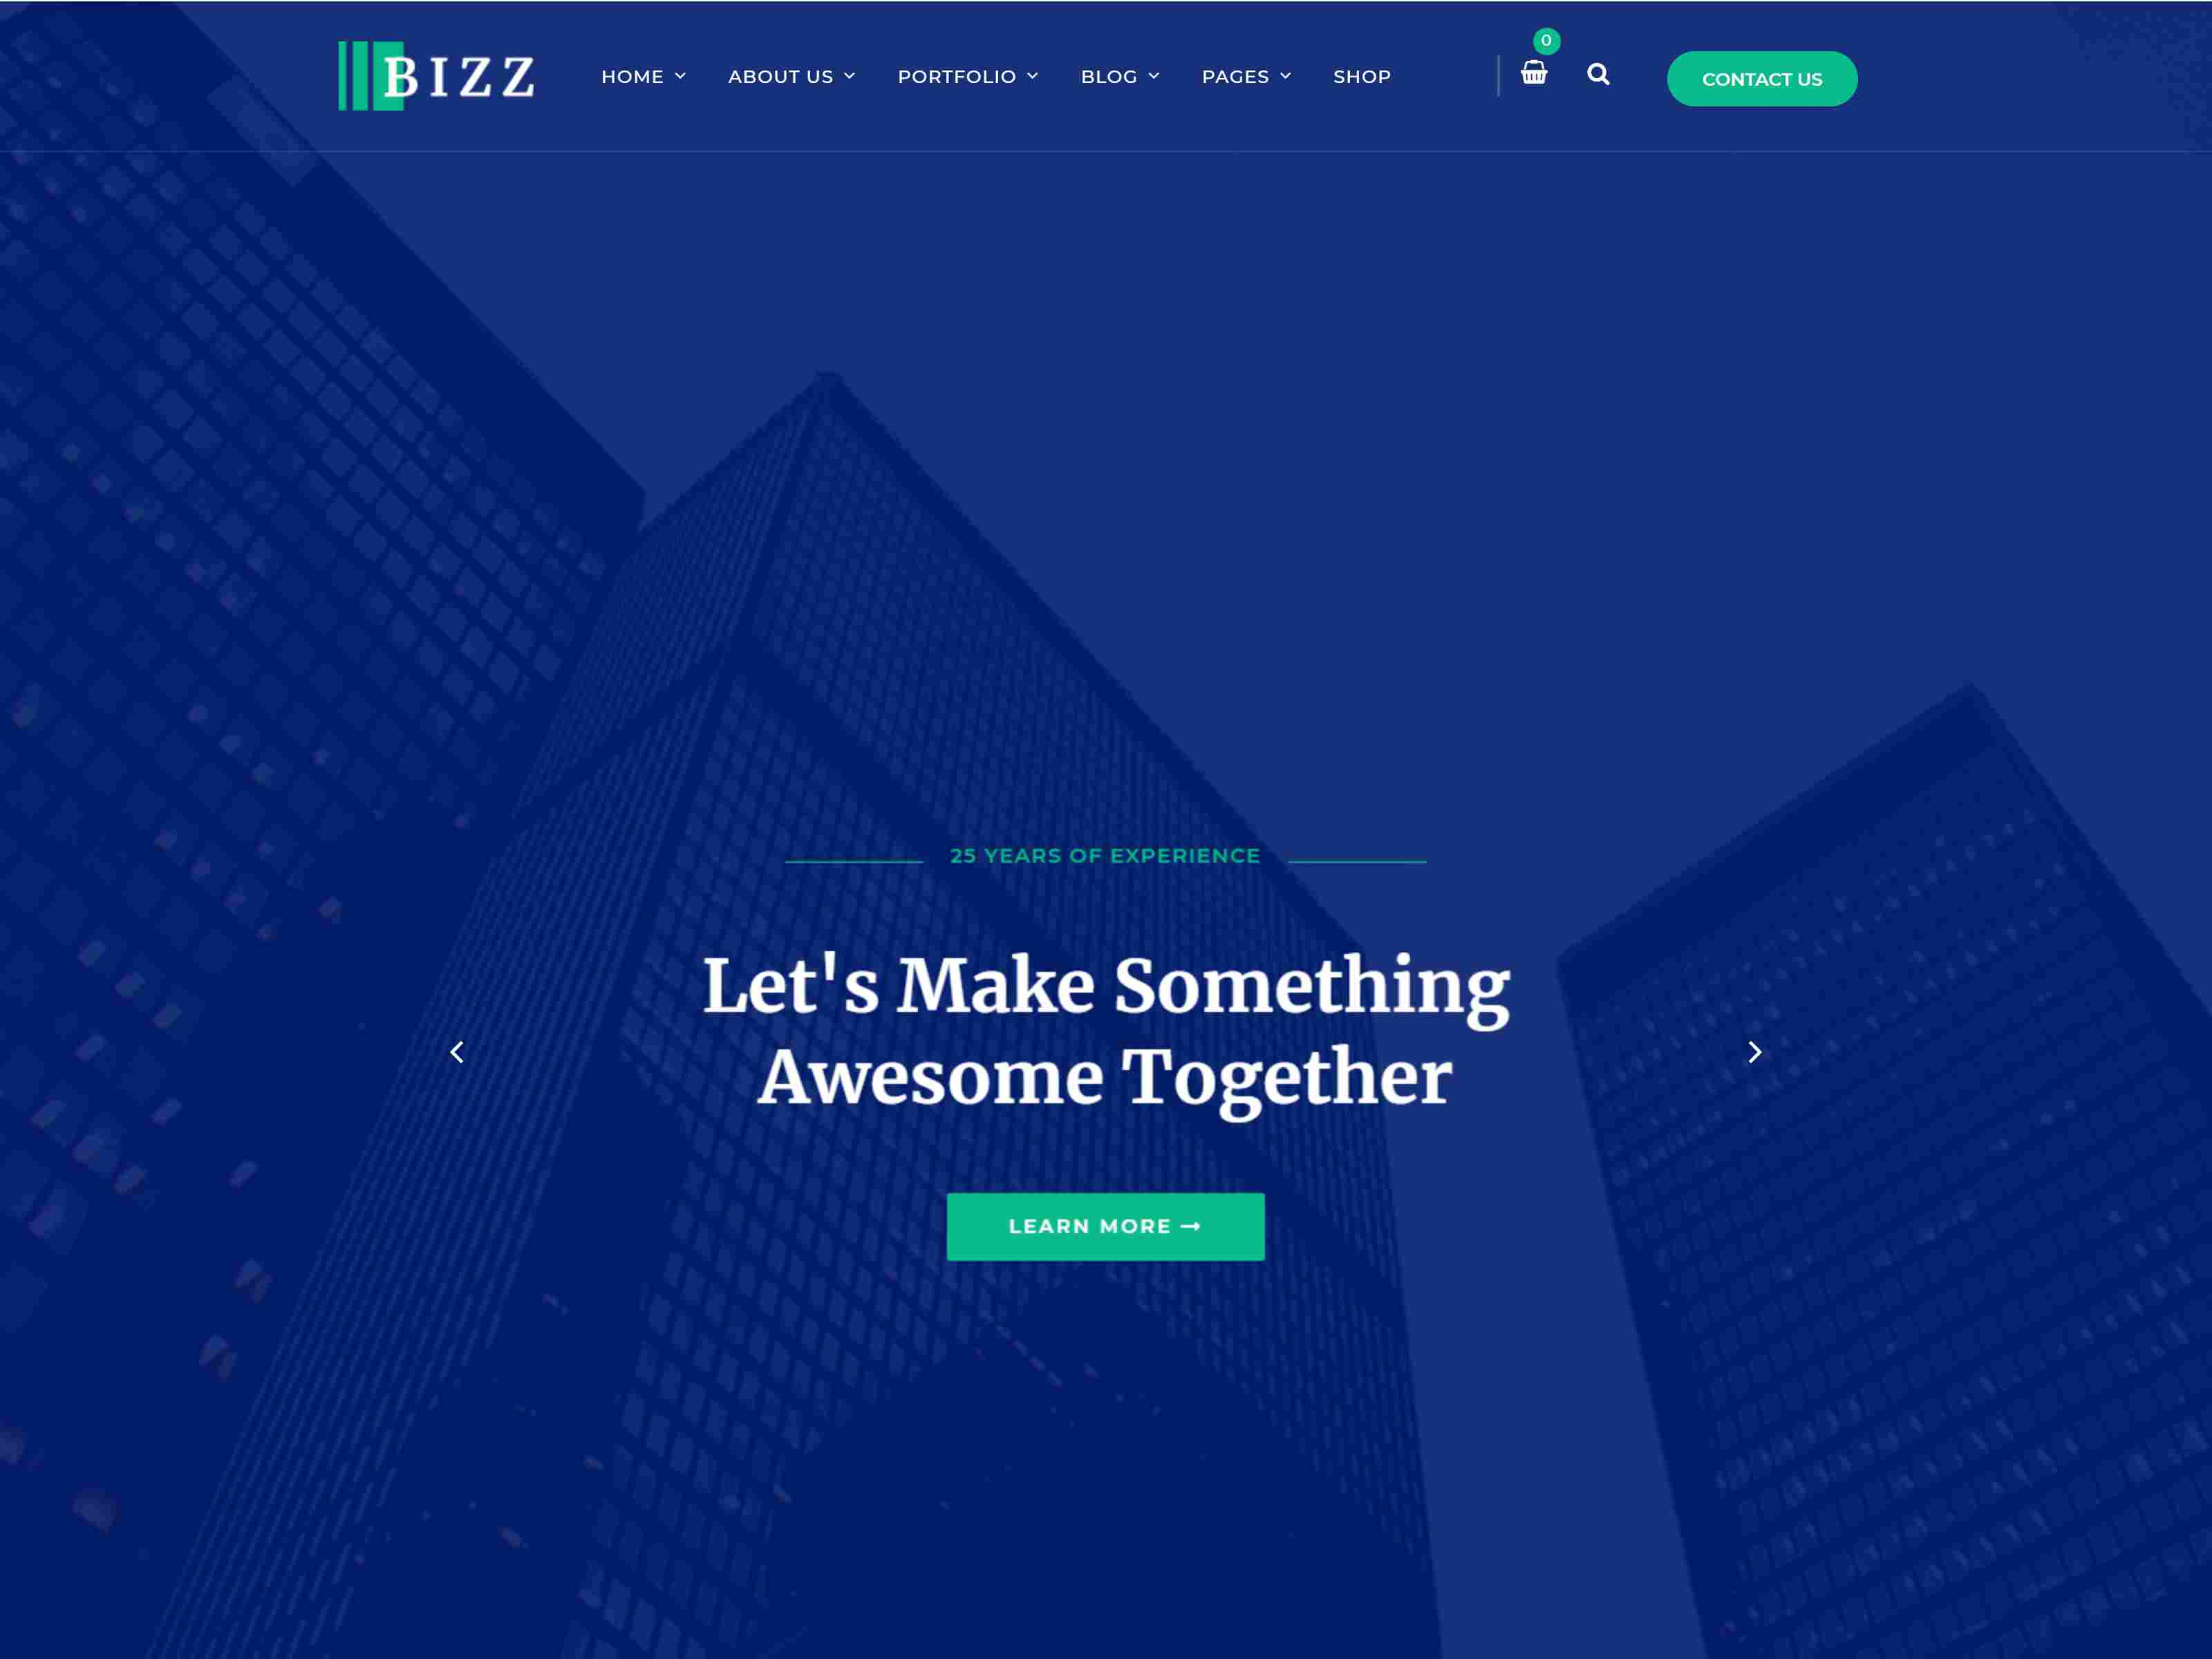 Bizz - Business Consulting and Professional Services Joomla Template